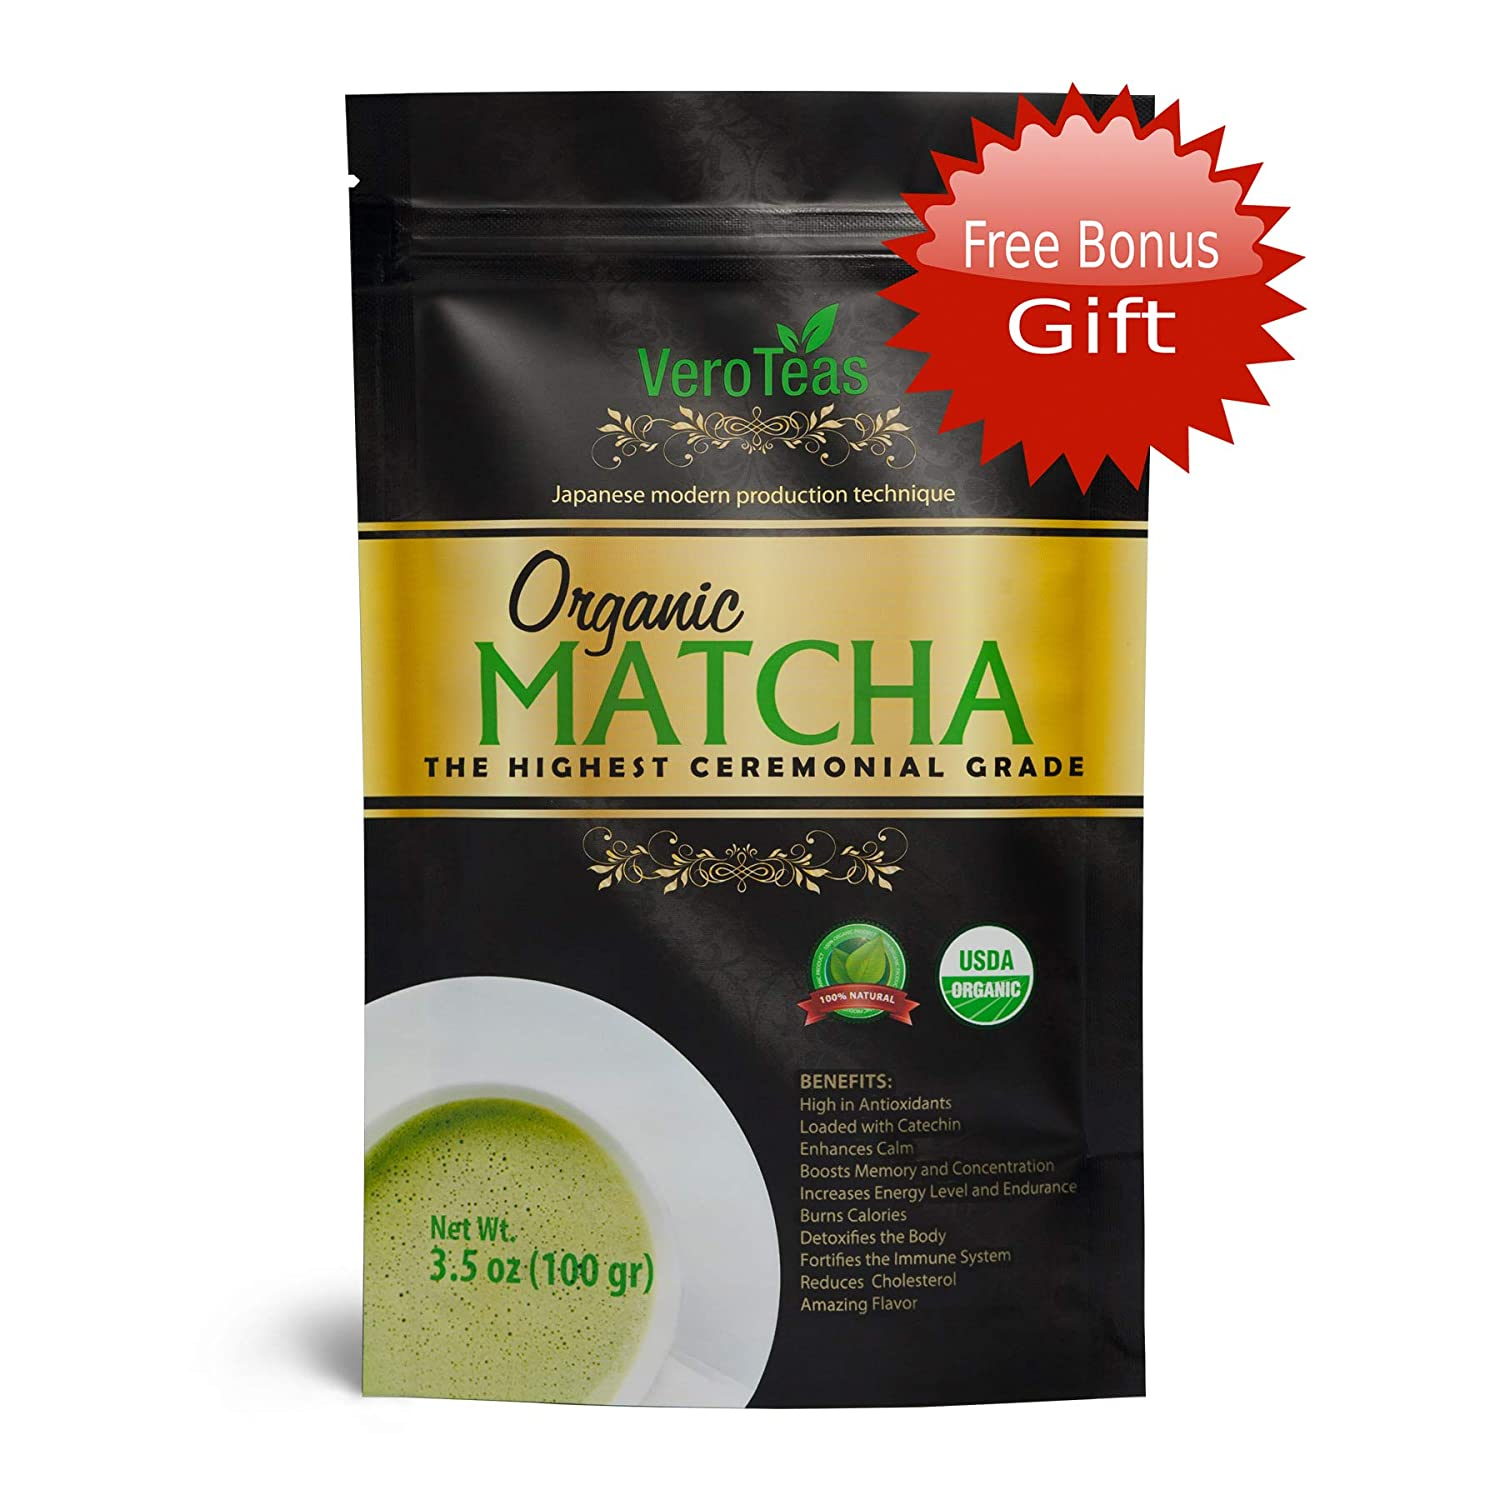 Organic Premium Ceremonial Japanese Matcha Green Tea Powder - First Harvest, Radiation Free, No Additives, Zero Sugar, Decaf – Kyoto, Japan – for Sipping – Latte Smoothie Baking – 100g (3.5 oz) Decaf – Kyoto Great Rise Company